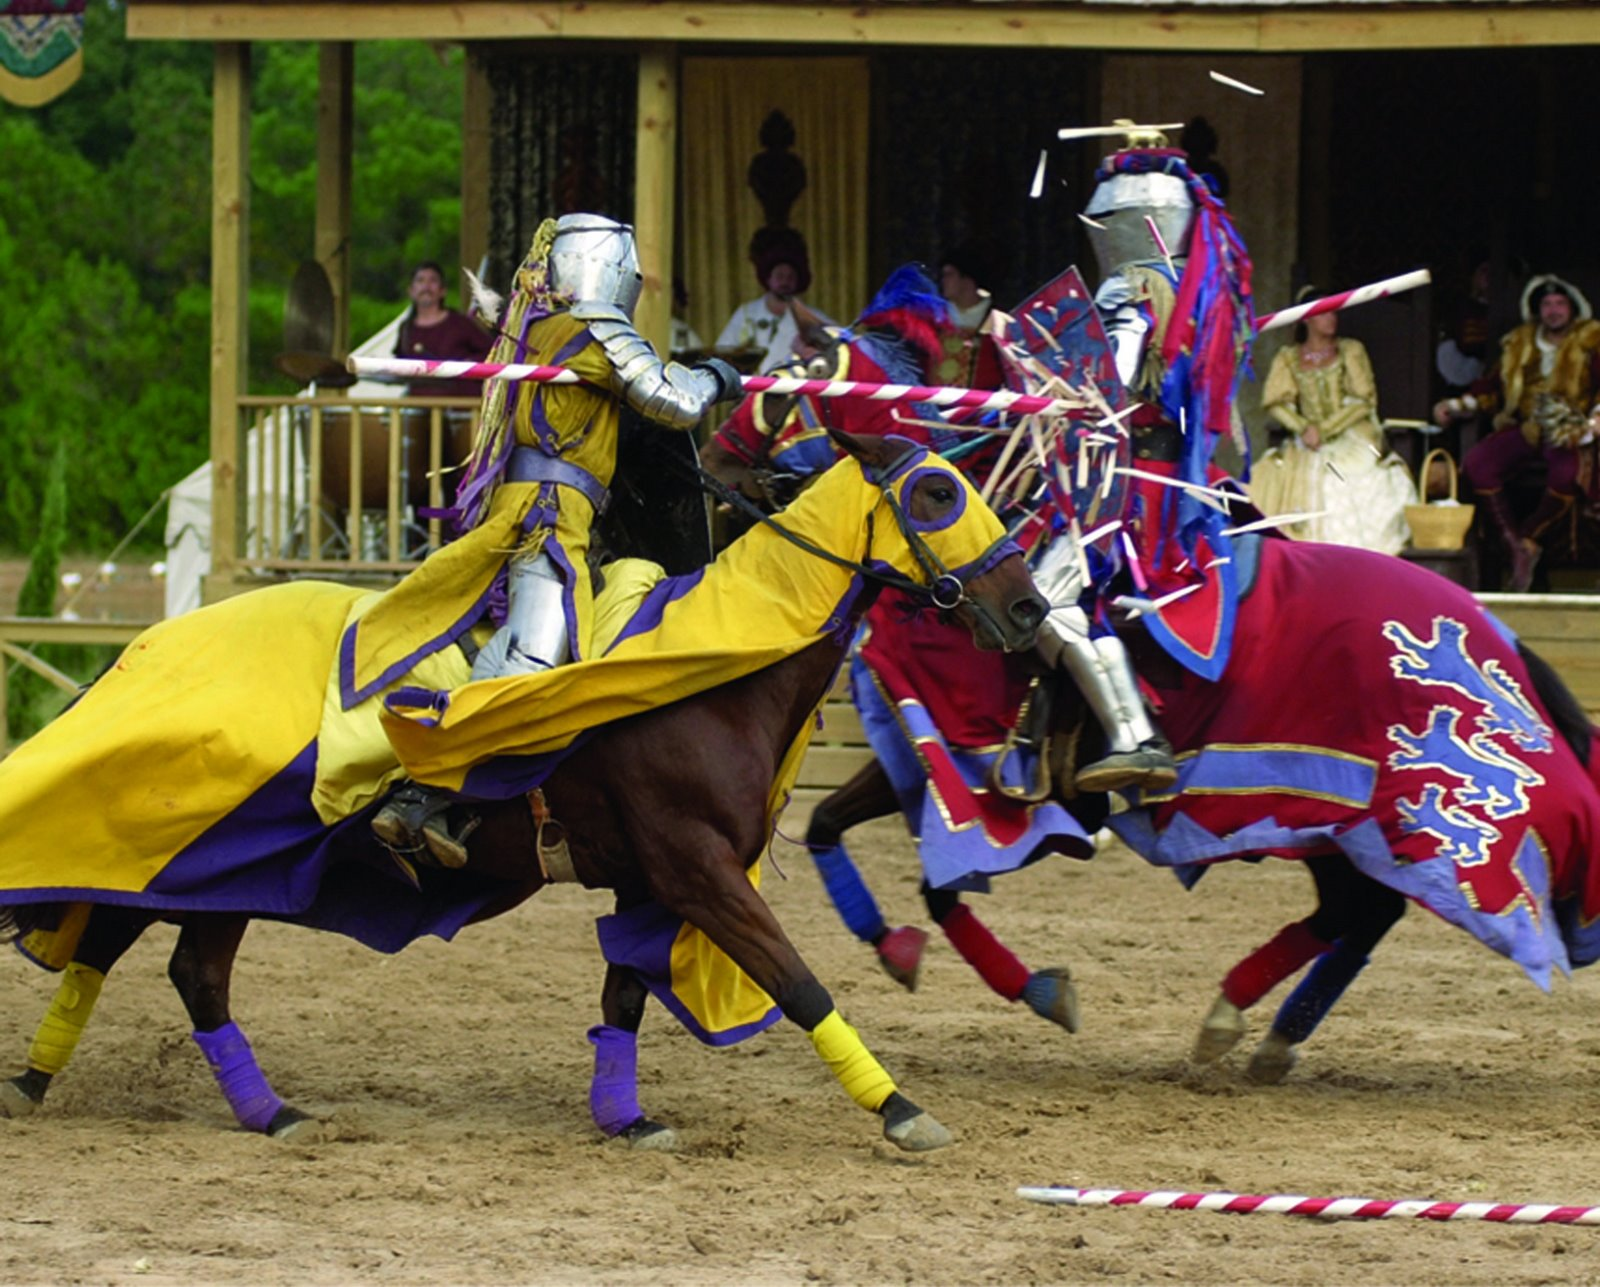 Renaissance Fairs: A Day Trip To The Middle Ages